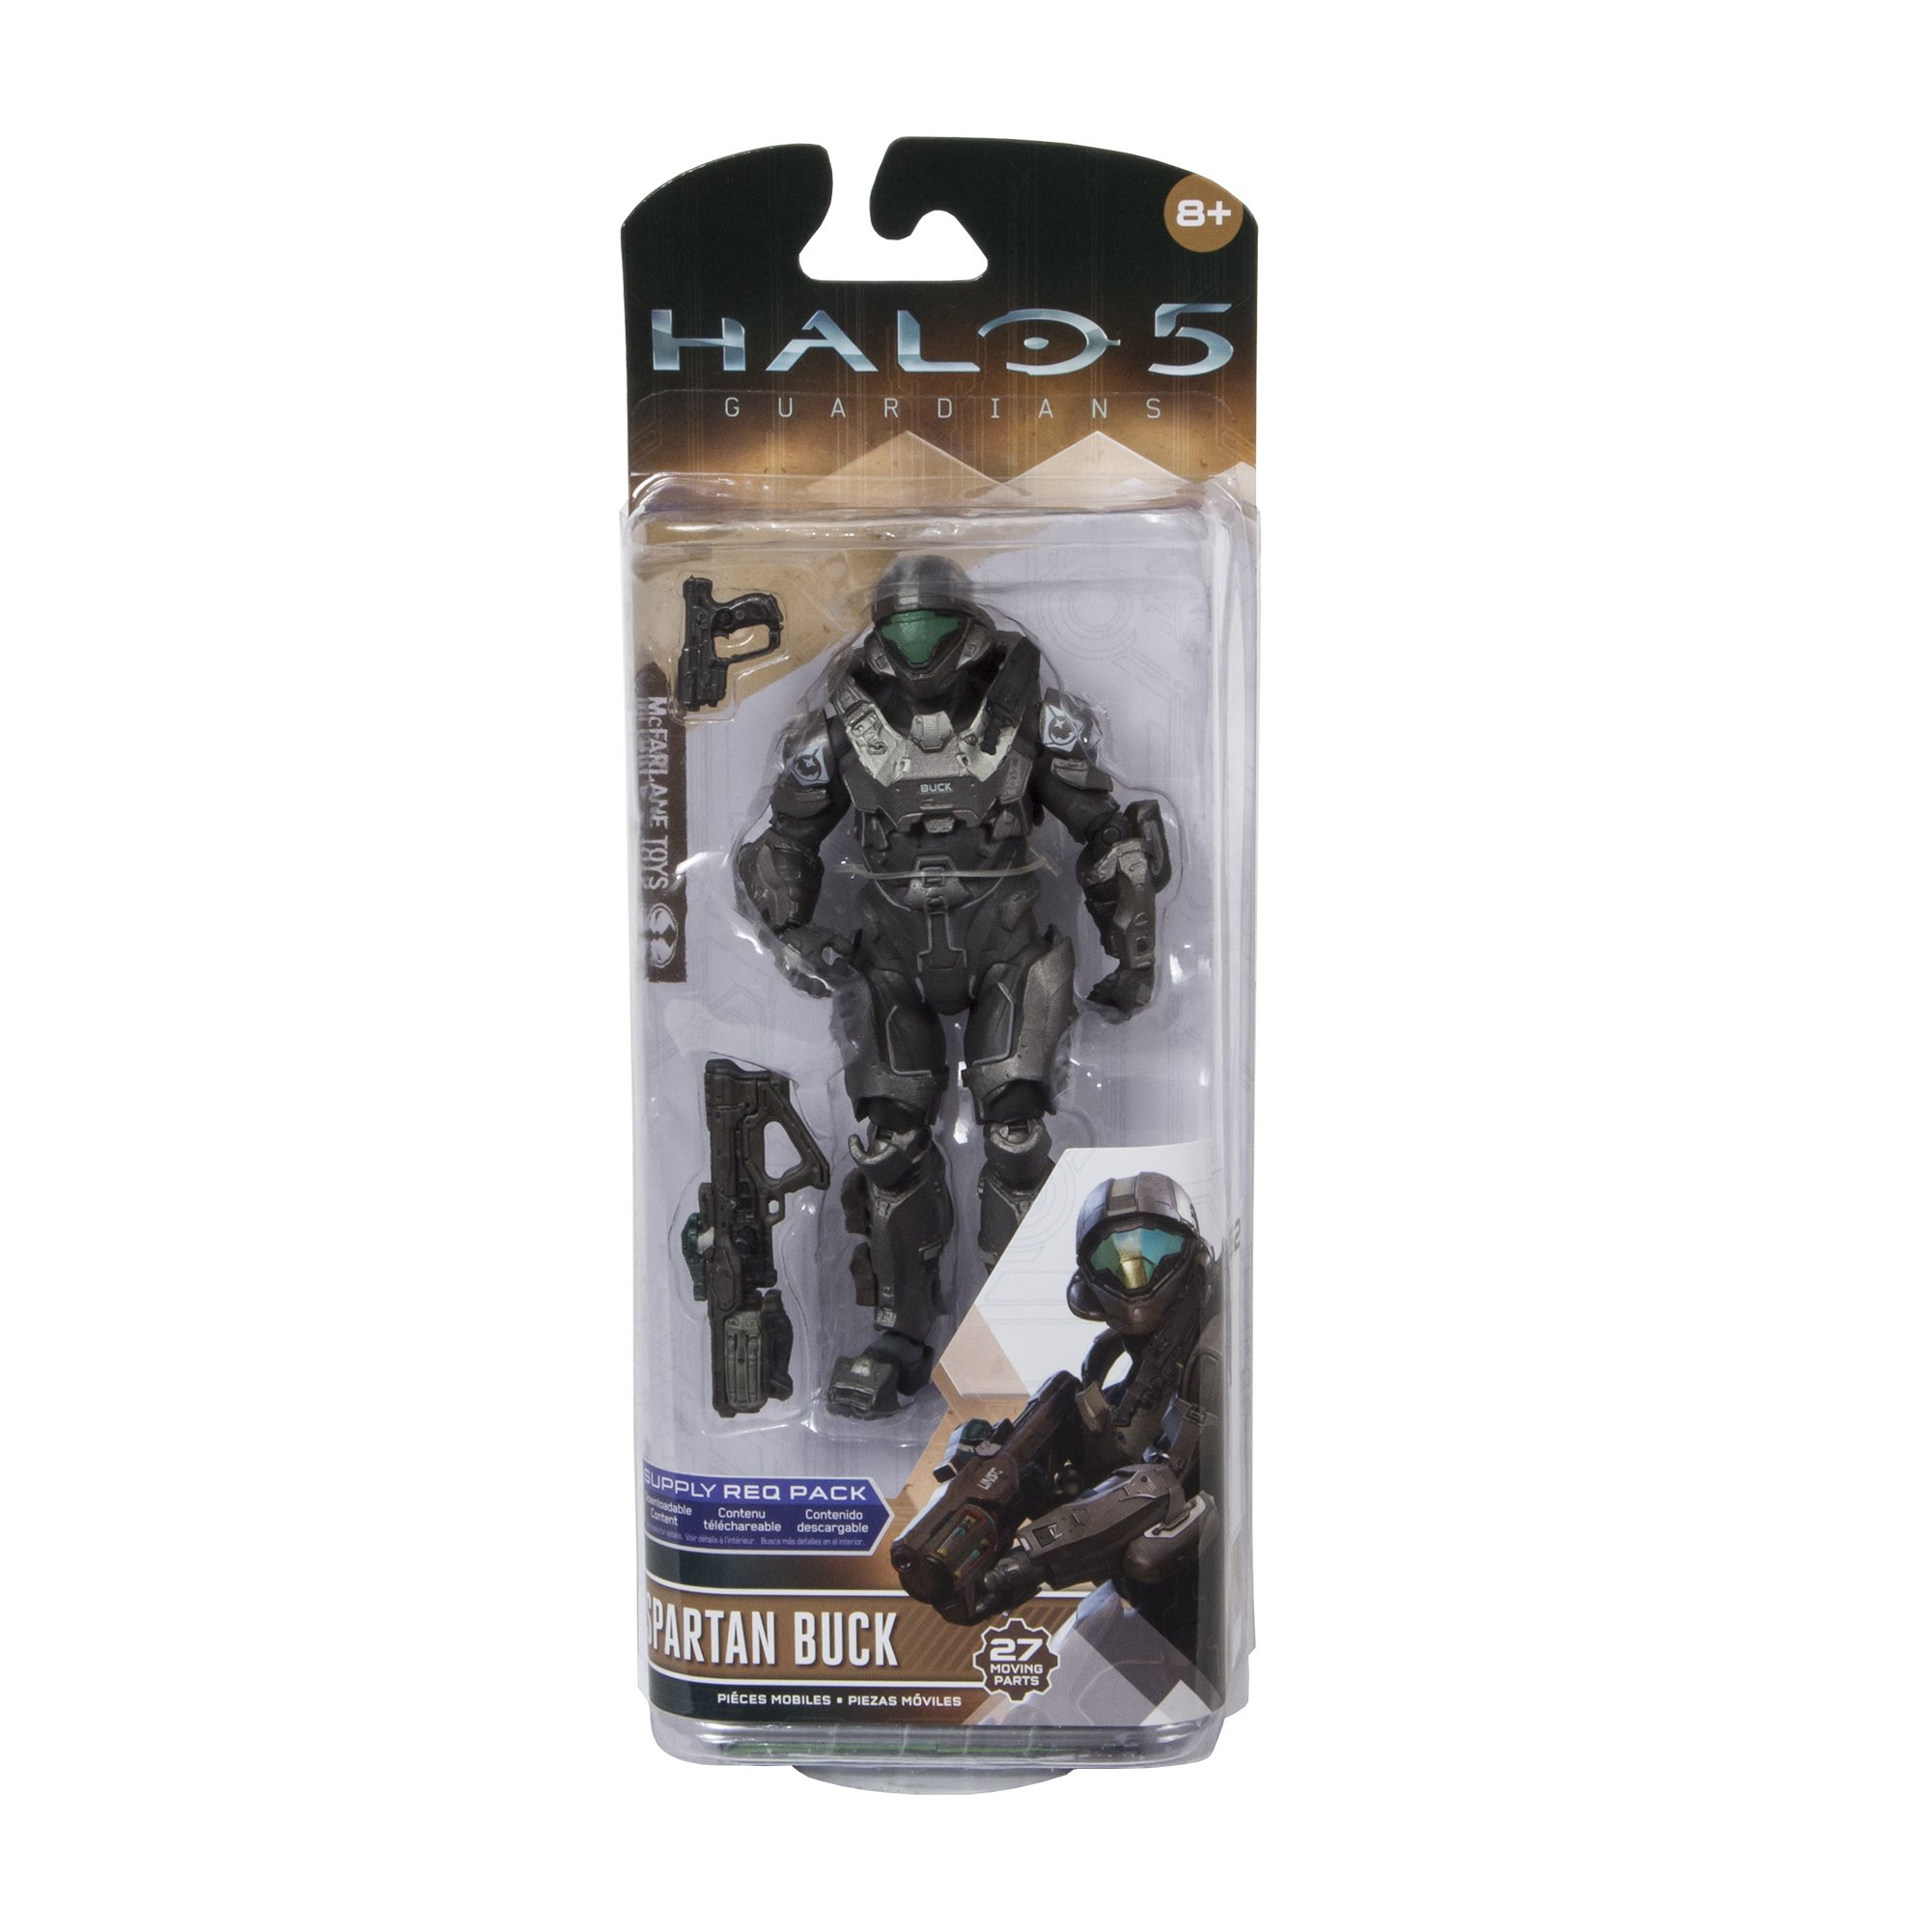 Mcf-halo 5 Guardians Series 2 Spartan Buck [6 Inch Figure] (TMP International Inc)